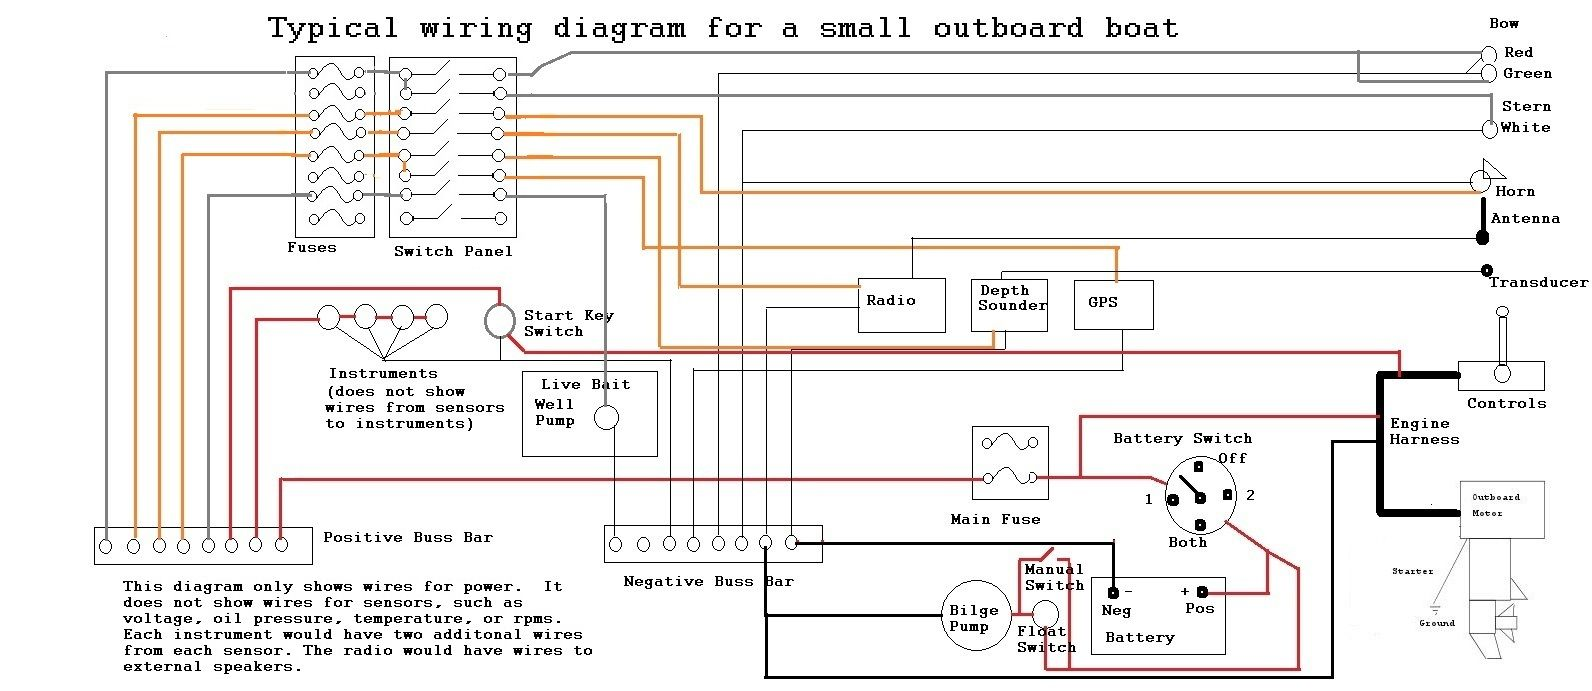 [DIAGRAM_4FR]  3659 Sylvan Pontoon Boat Wiring Diagram | Wiring Resources | Sylvan Boat Fuse Box |  | Wiring Resources